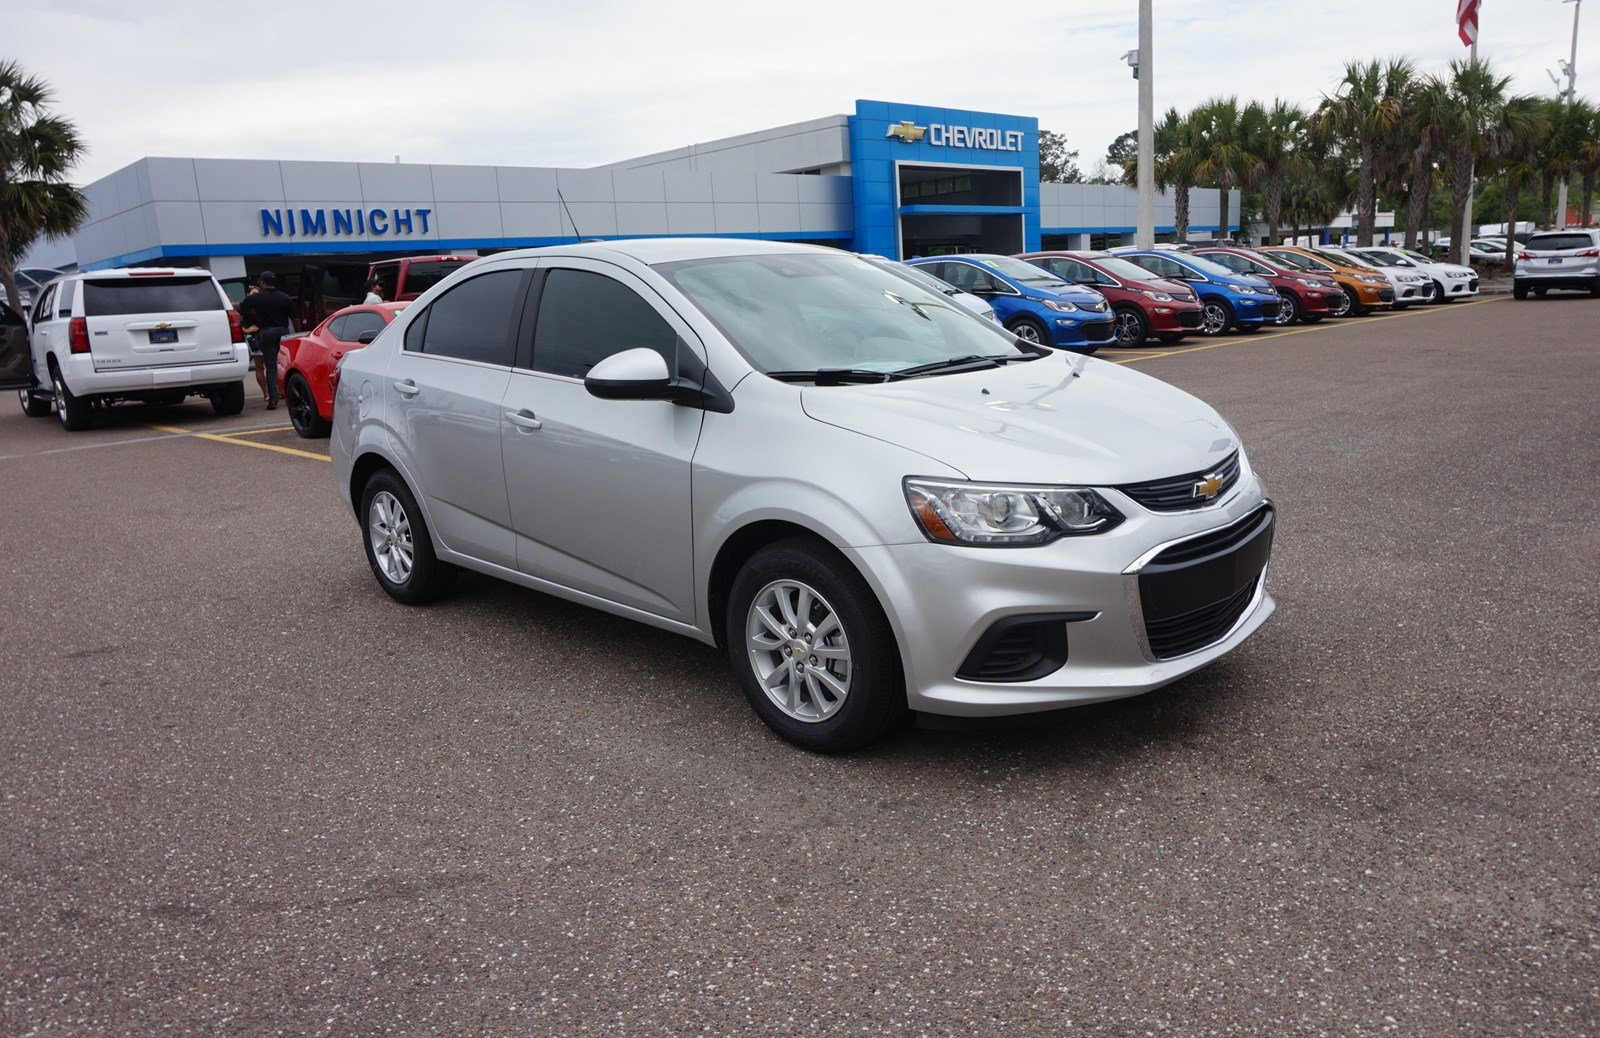 sedan oklahoma lt chevrolet new fwd city inventory hudiburg sonic